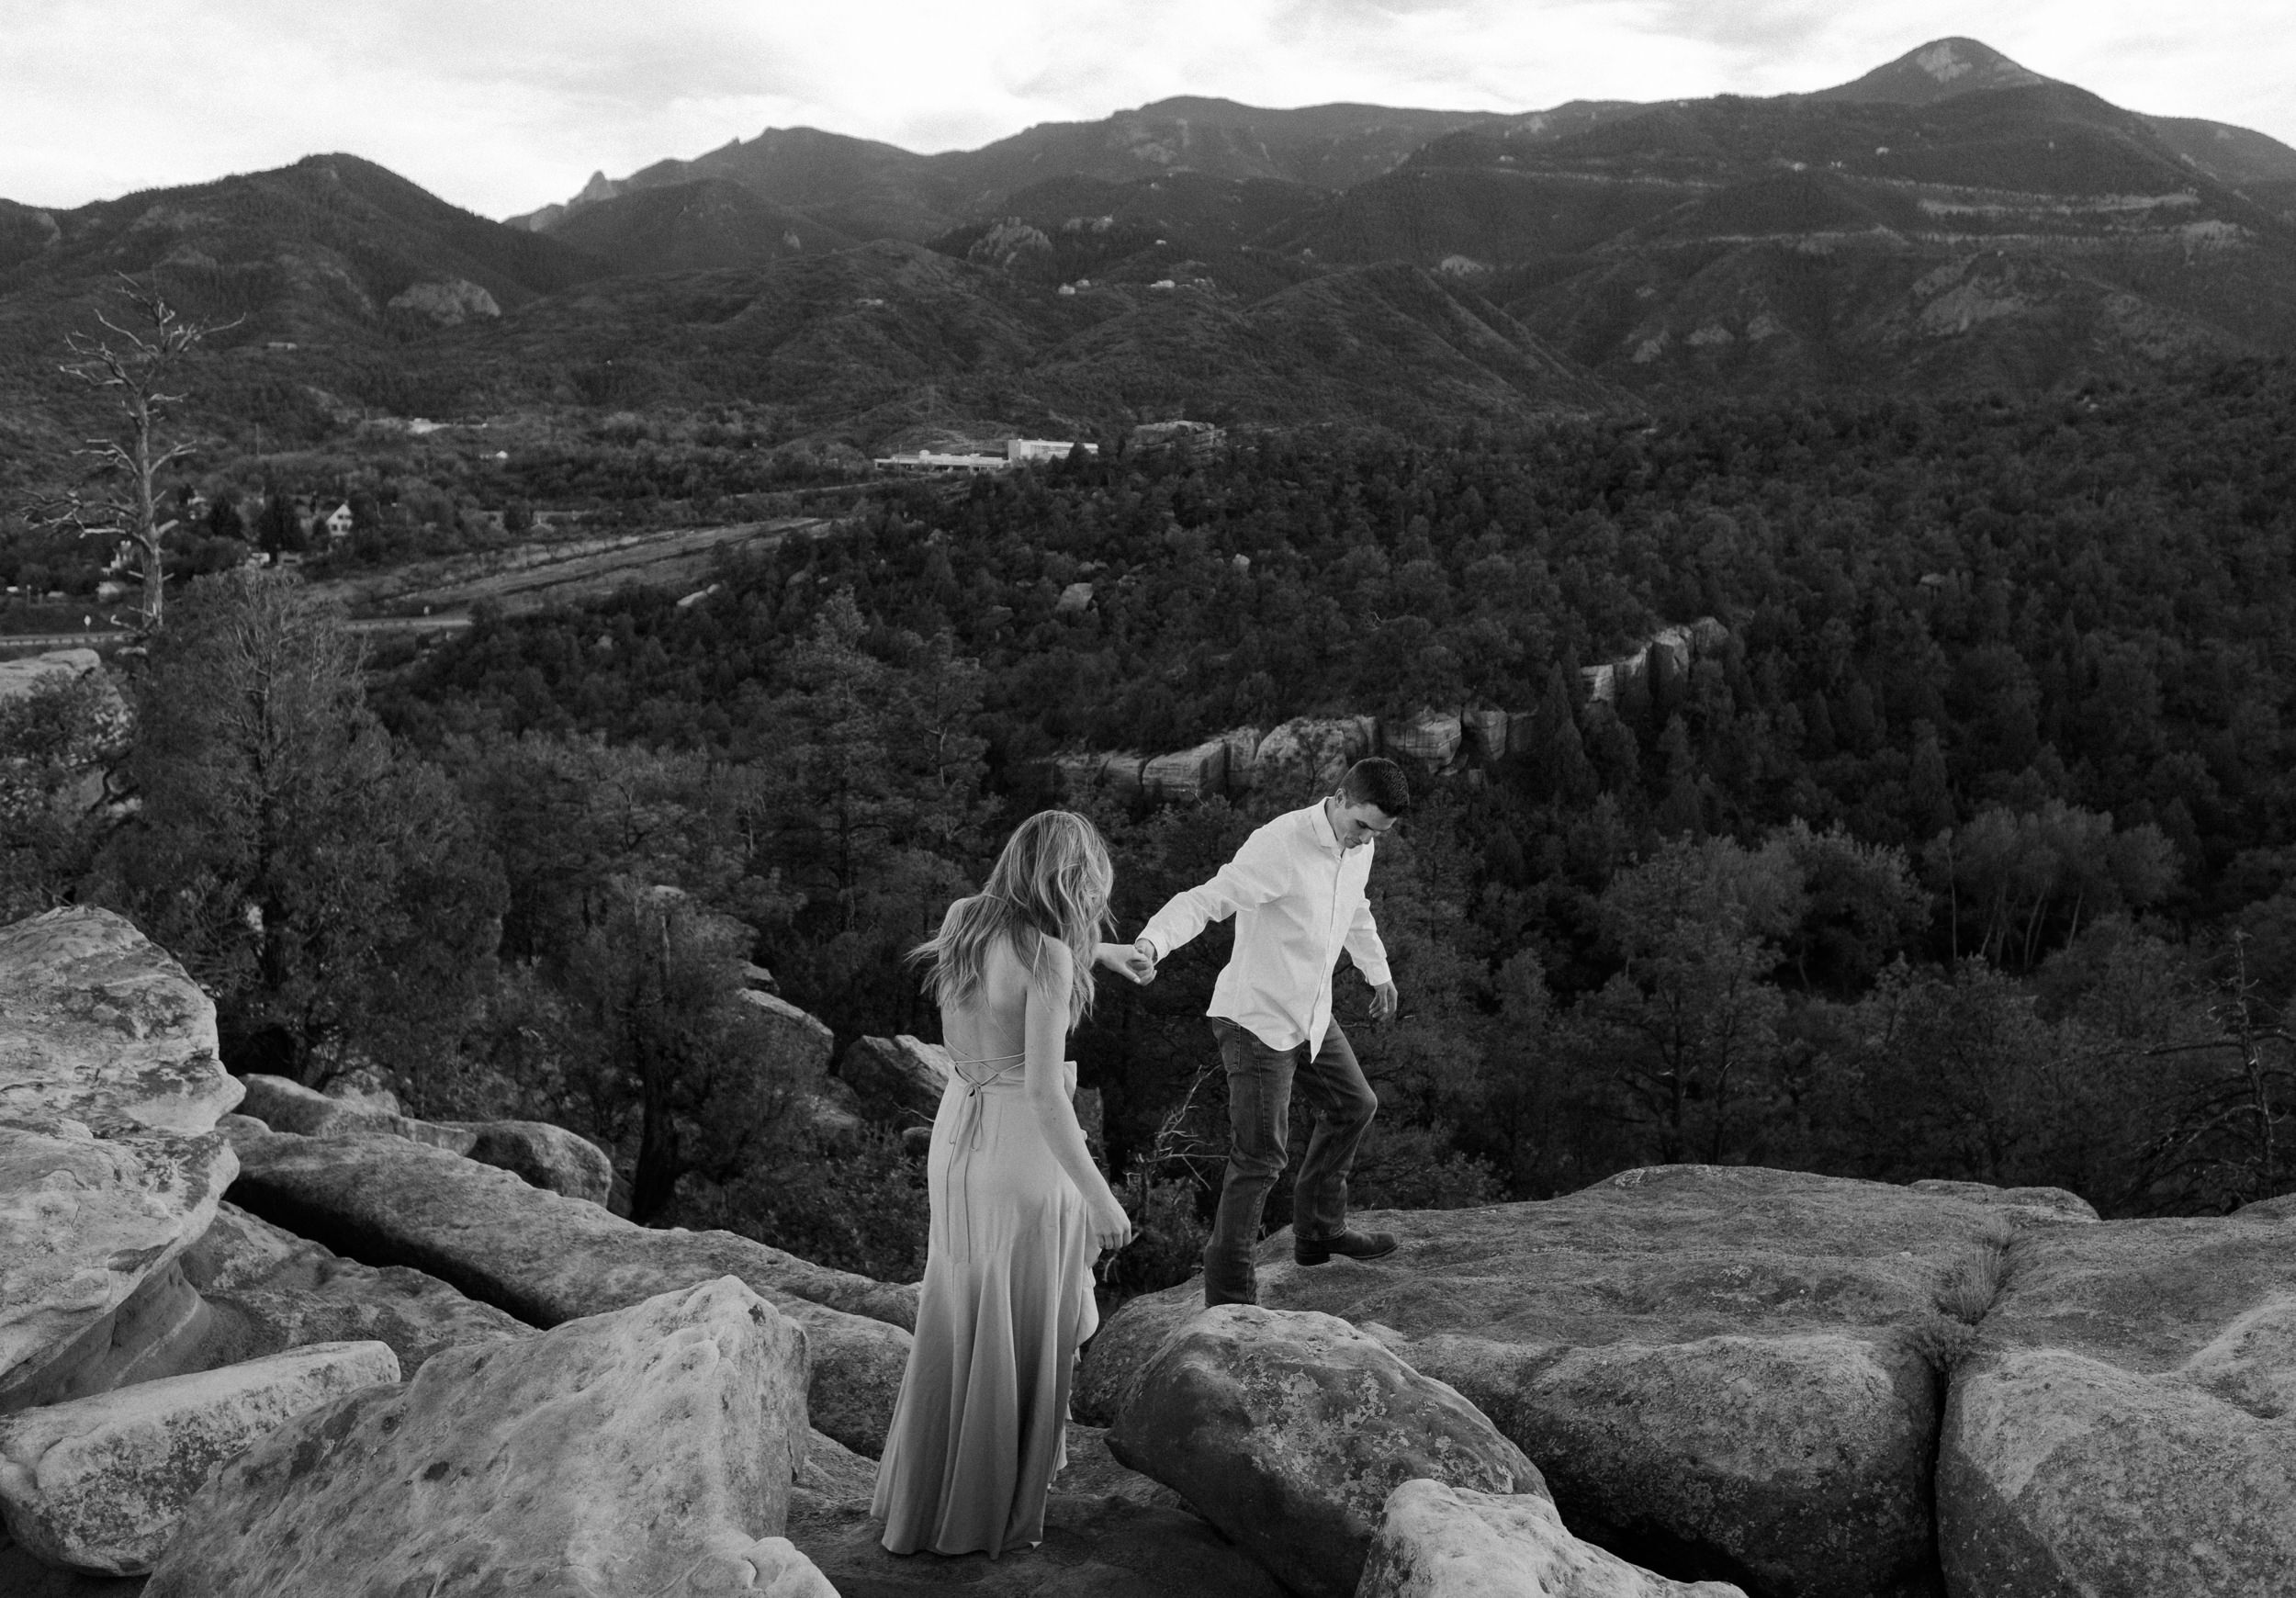 Engagement session in Colorado Springs at Garden of the Gods. Colorado based wedding and elopement photographer. Adventure engagement photos at Garden of the Gods.